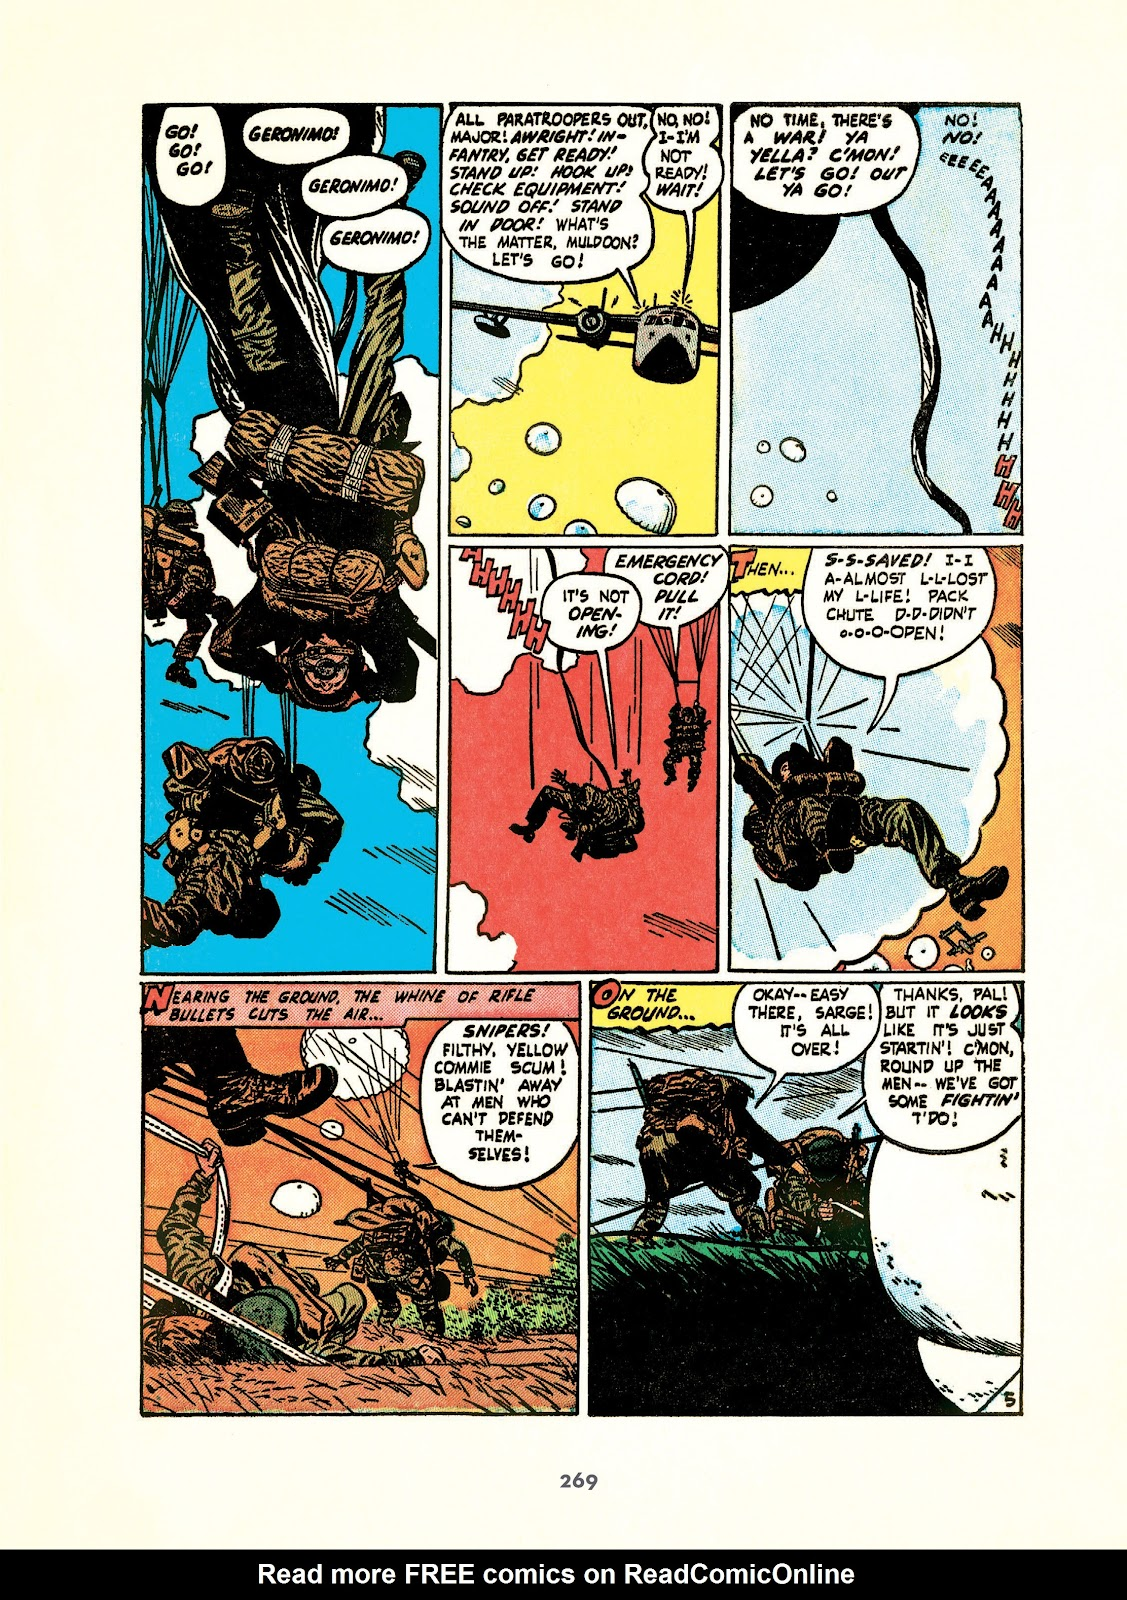 Read online Setting the Standard: Comics by Alex Toth 1952-1954 comic -  Issue # TPB (Part 3) - 70